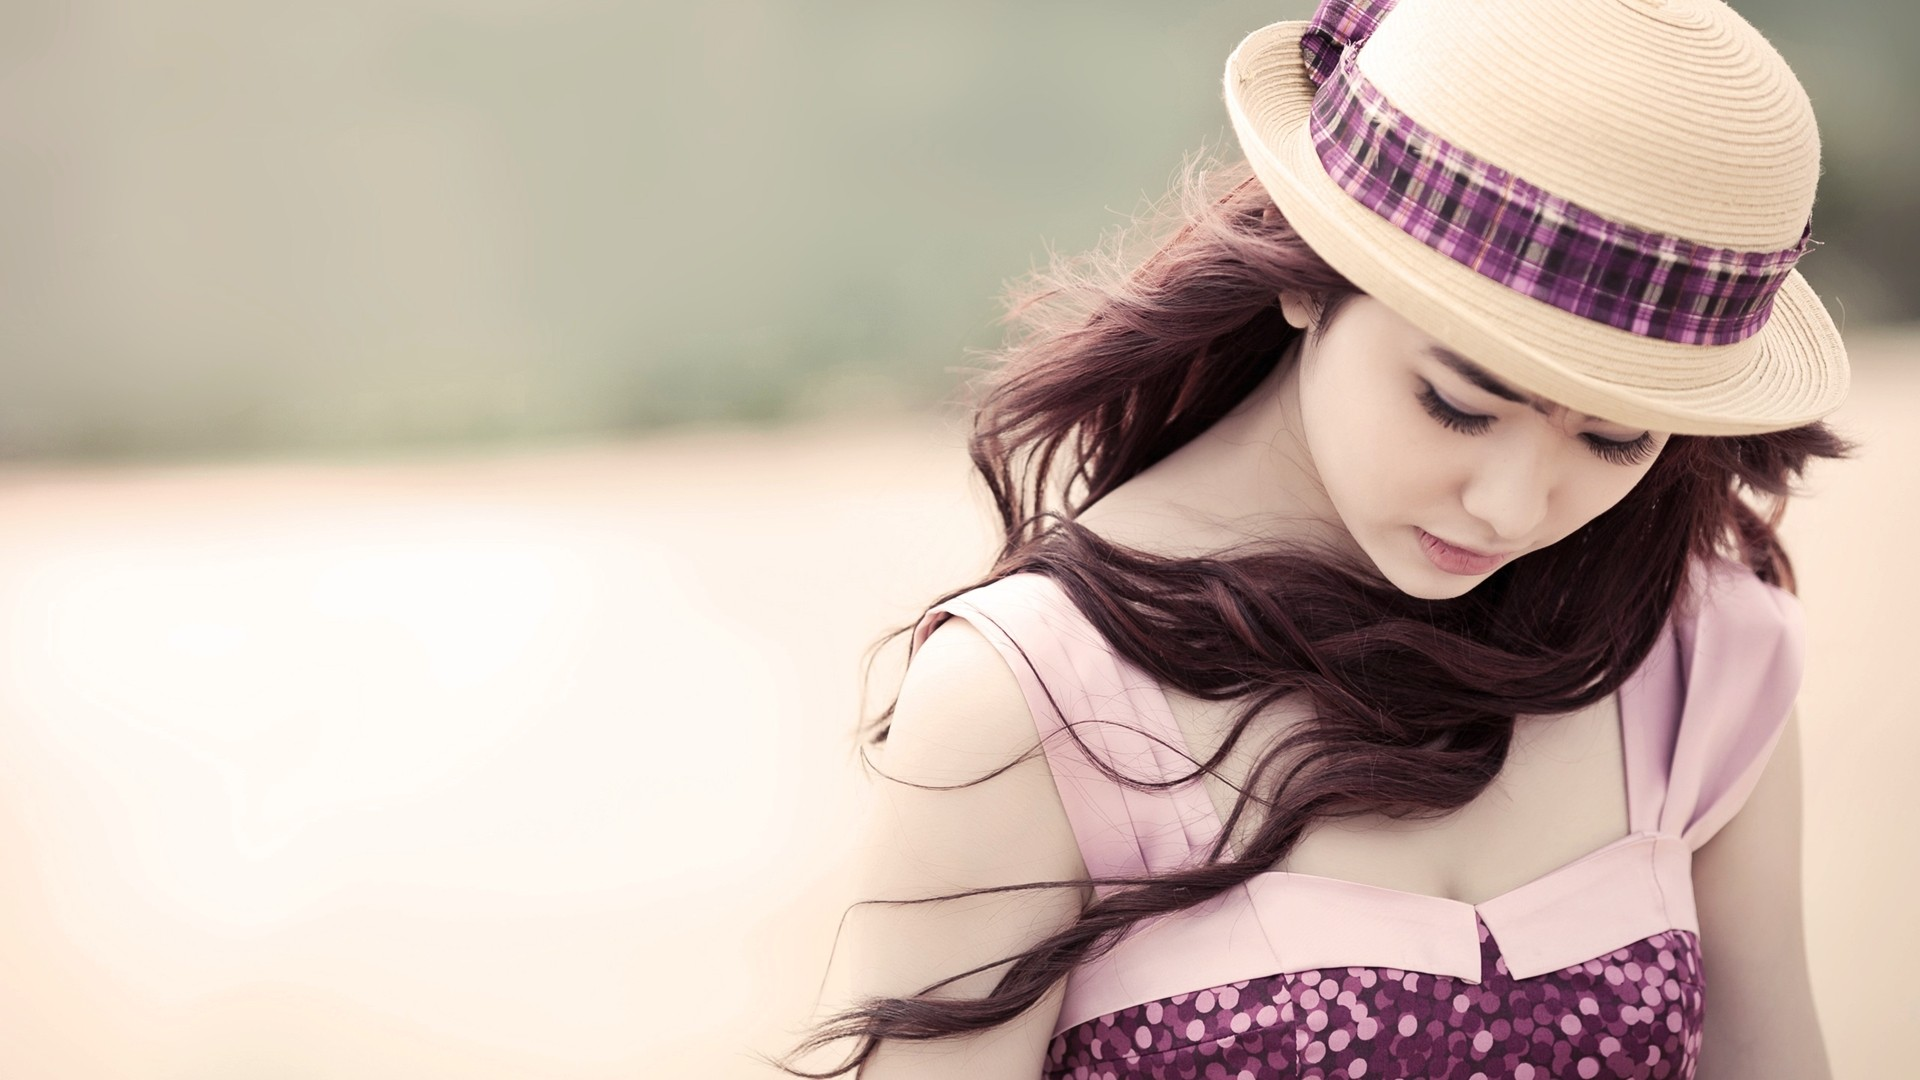 Girls Wallpapers With Attitude 21 Fantastic Hd Hat Wallpapers Hdwallsource Com